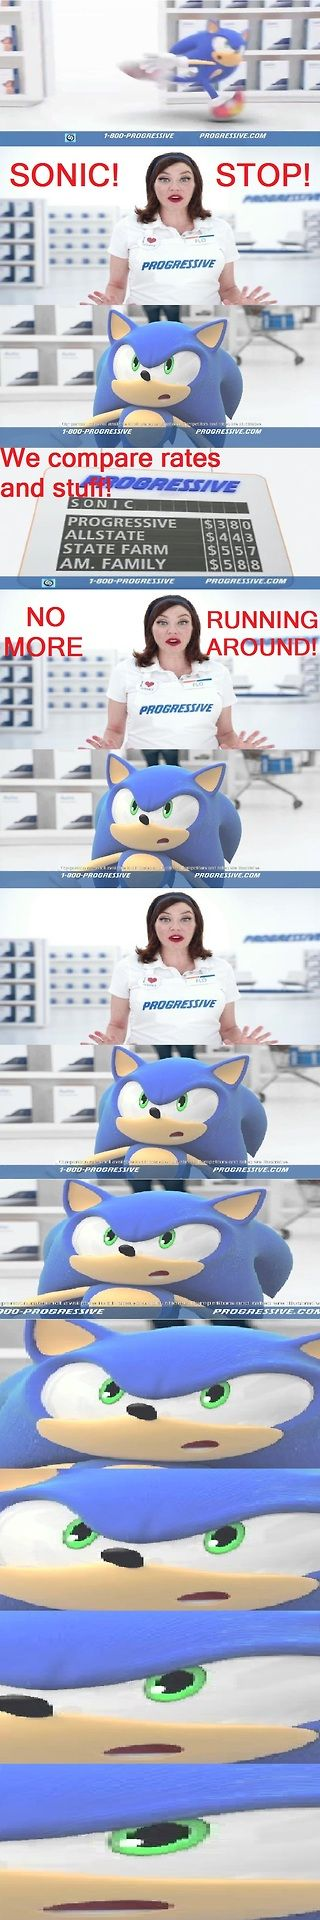 I loved this and I definitely stayed glued to the TV for a few days trying to catch it... But not even Flo can tell Sonic to quit running around!